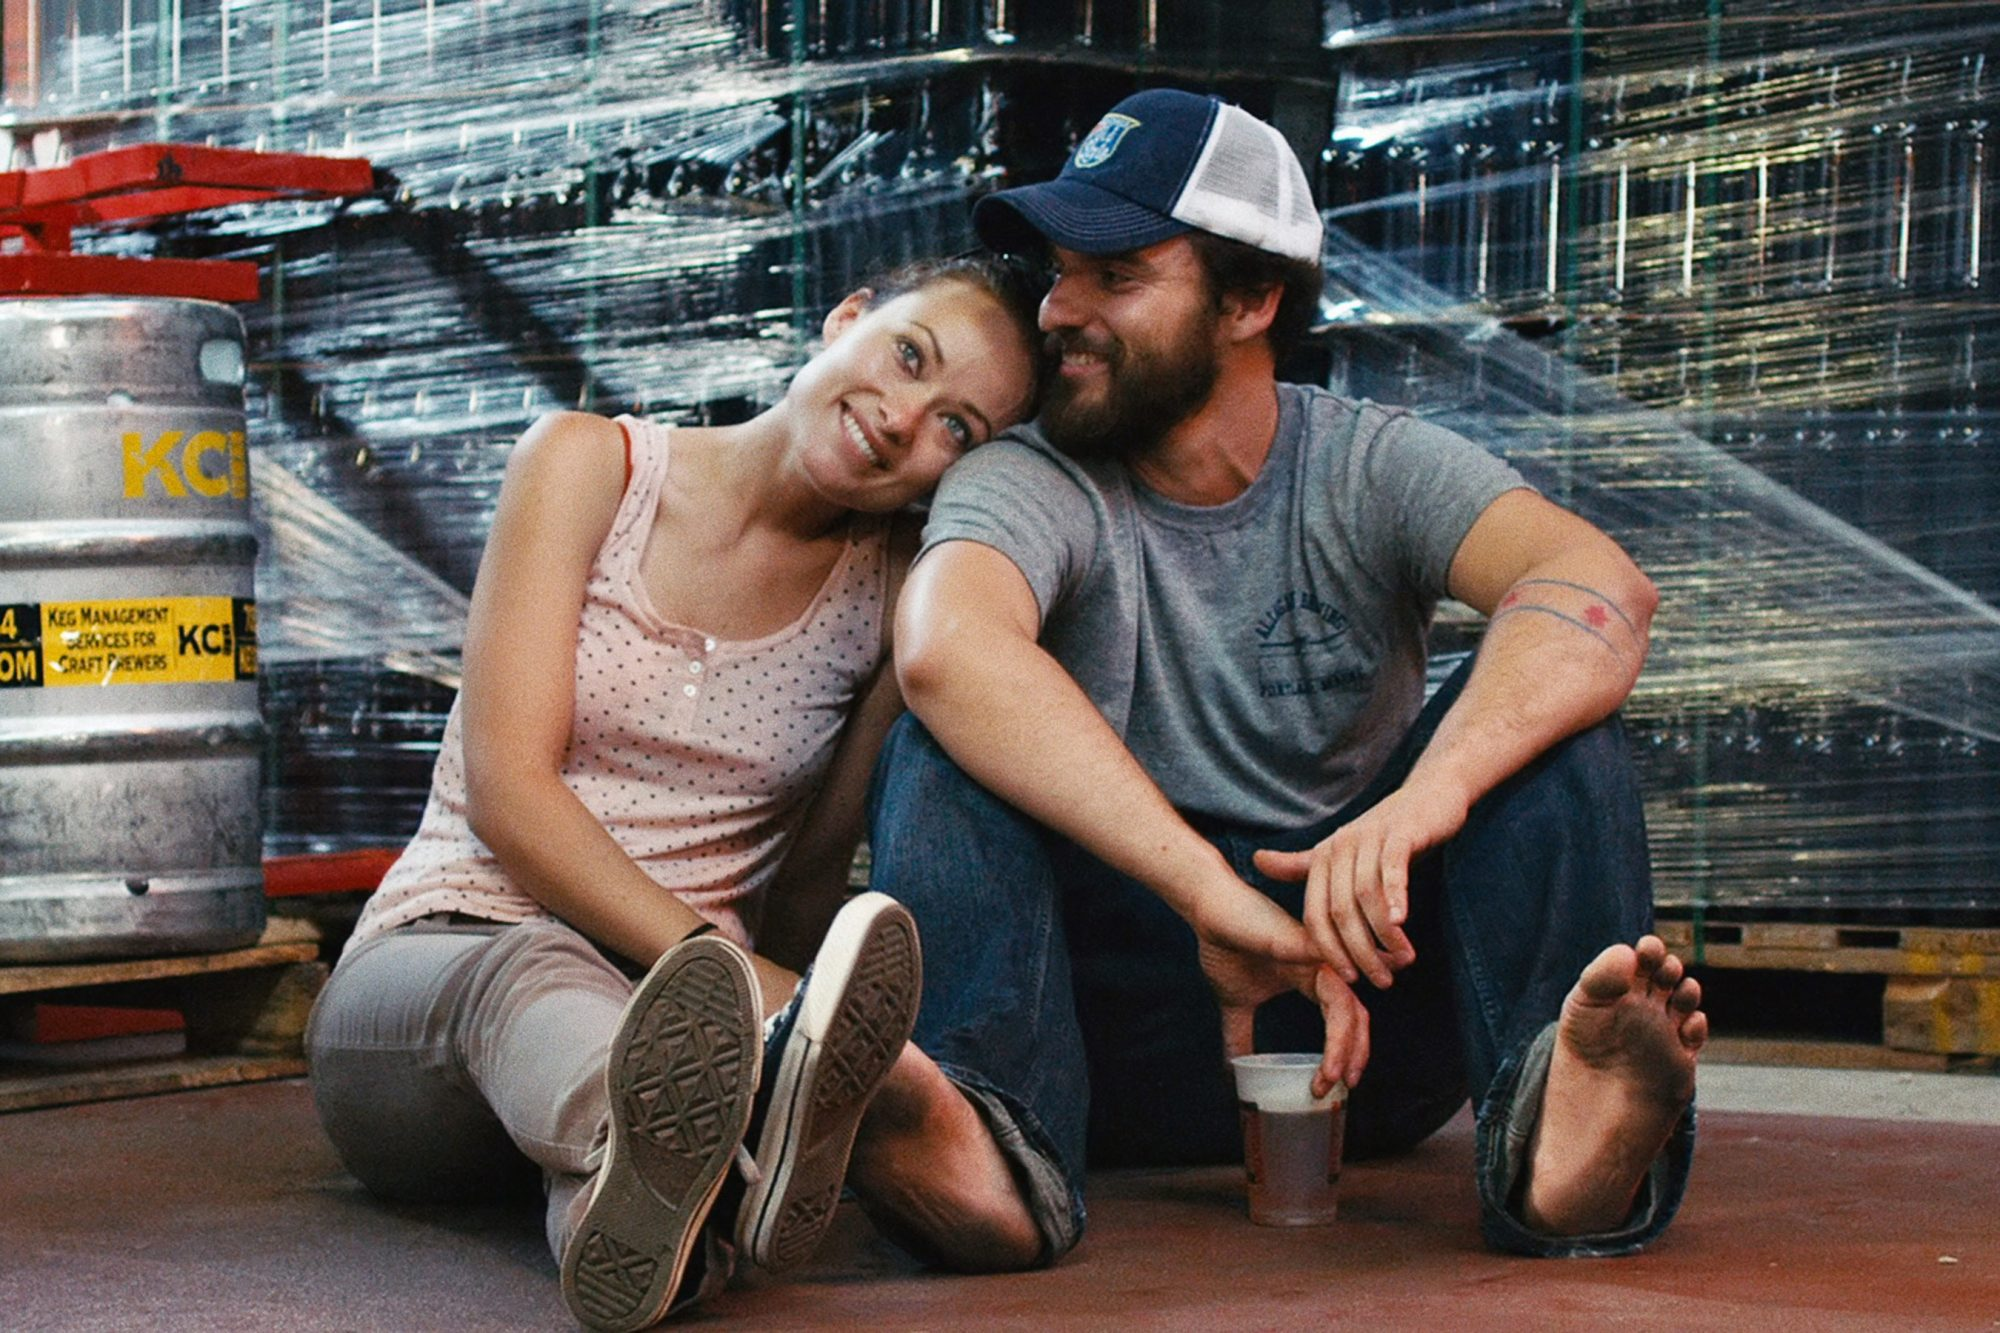 DRINKING BUDDIES, l-r: Olivia Wilde, Jake Johnson, 2013, ©Magnolia Pictures/courtesy Everett Collect